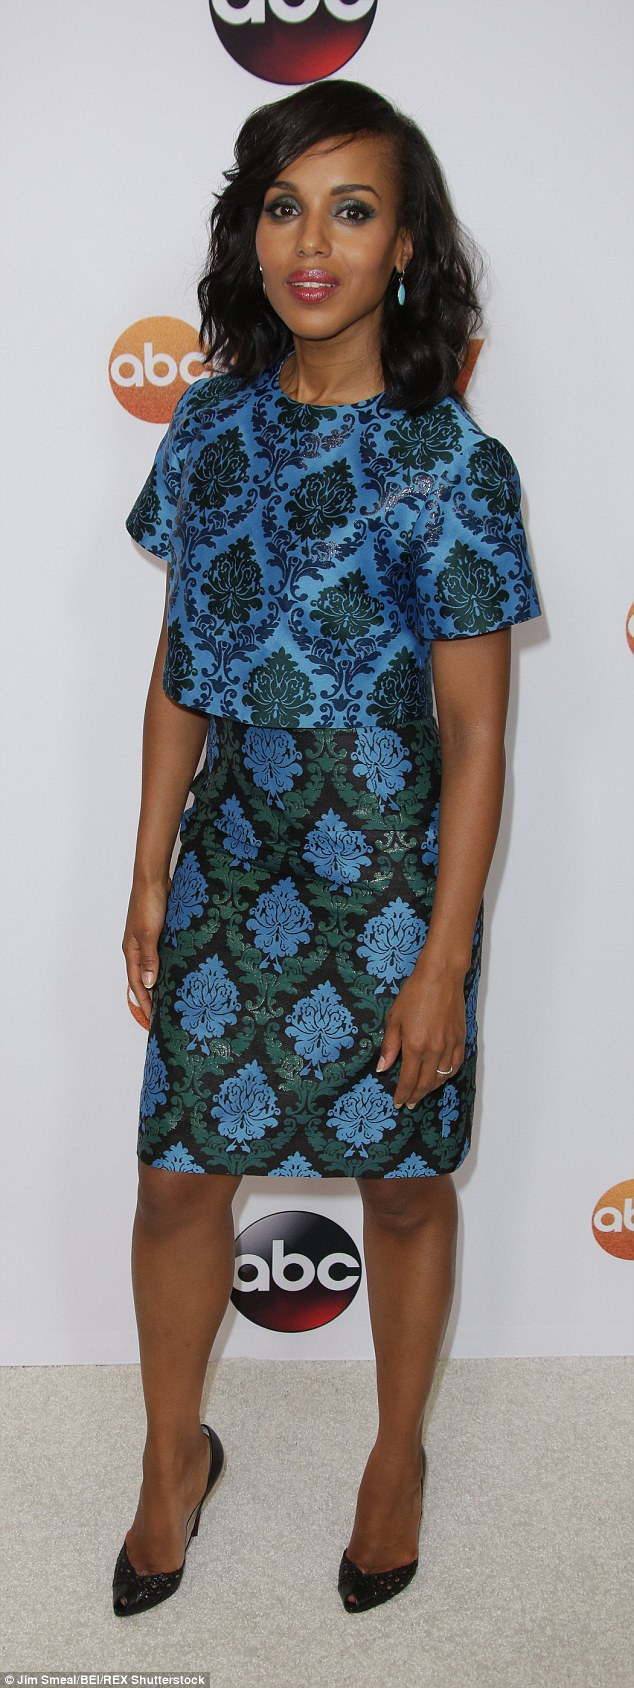 Kerry Washington came in joint 9th place with Patricia Heaton who appears in The Middle - she is pictured here at the TCA Summer Press Tour in LA this year